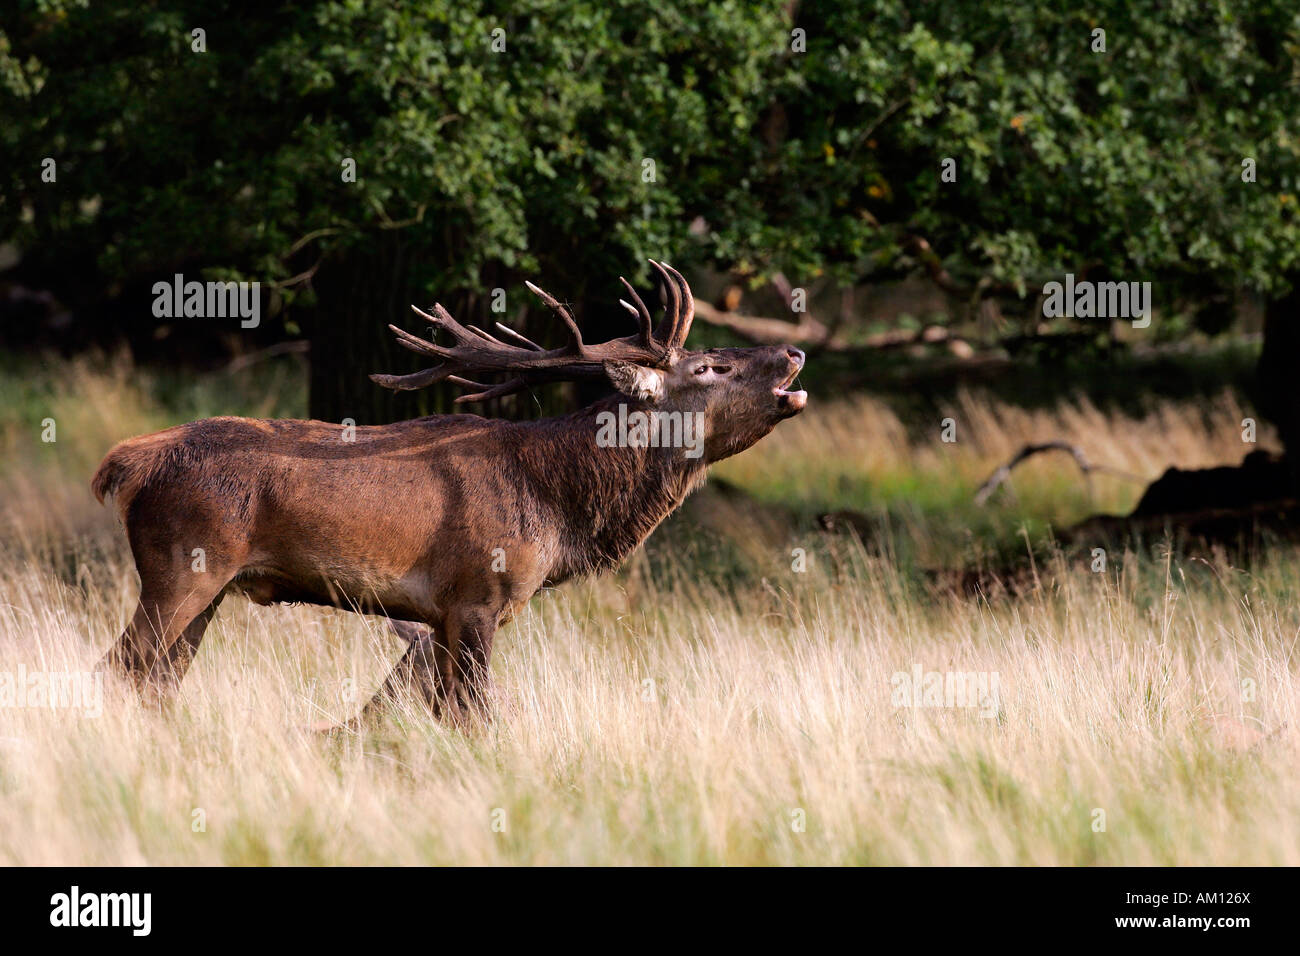 Belling red stag during the rut - red deer in heat - male (Cervus elaphus) Stock Photo